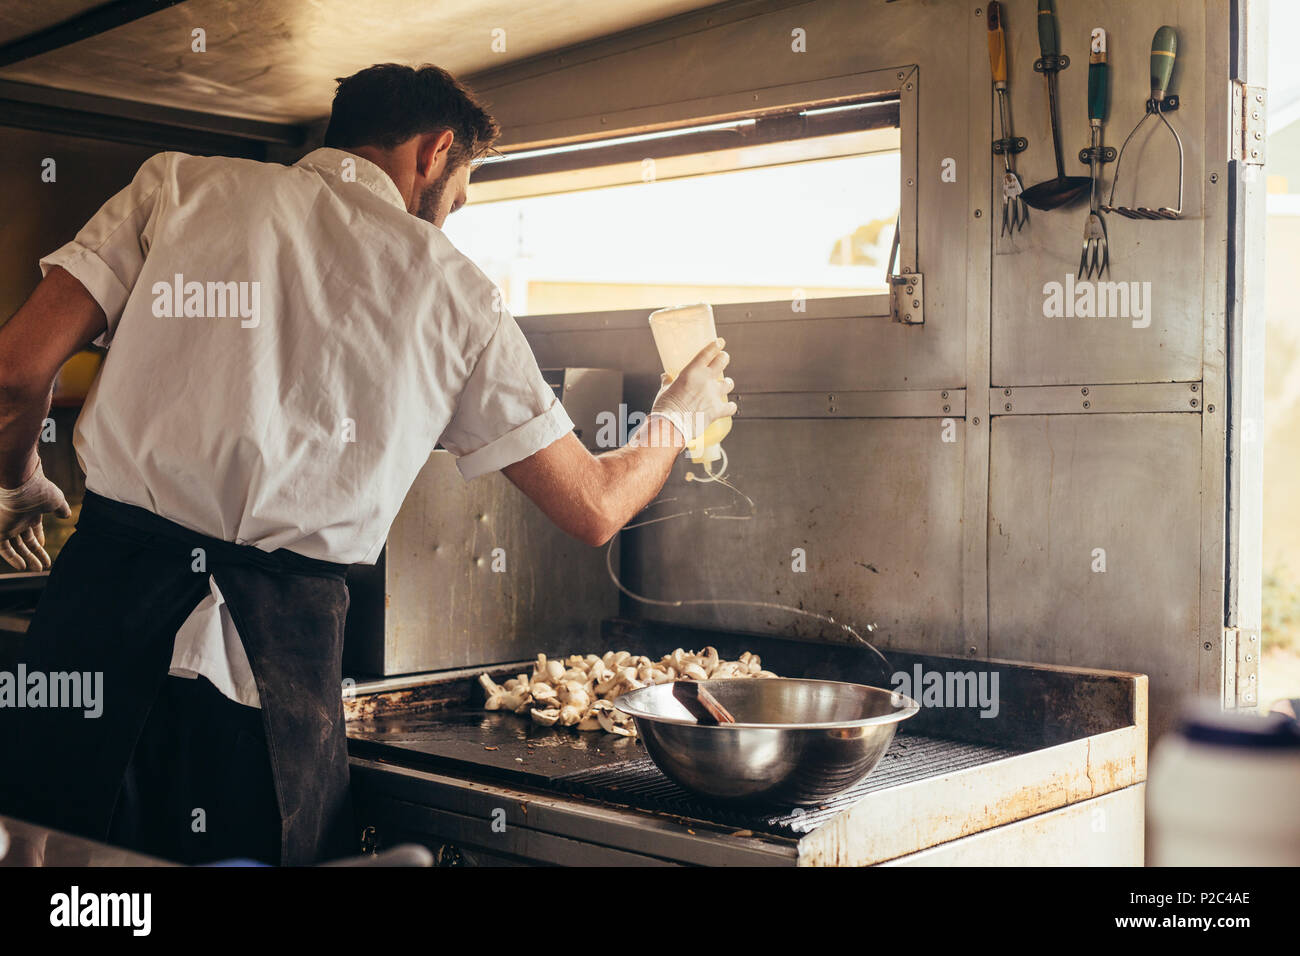 Young chef cooking some of his favorite dishes in a food truck. Man preparing food on stove in his food truck. - Stock Image